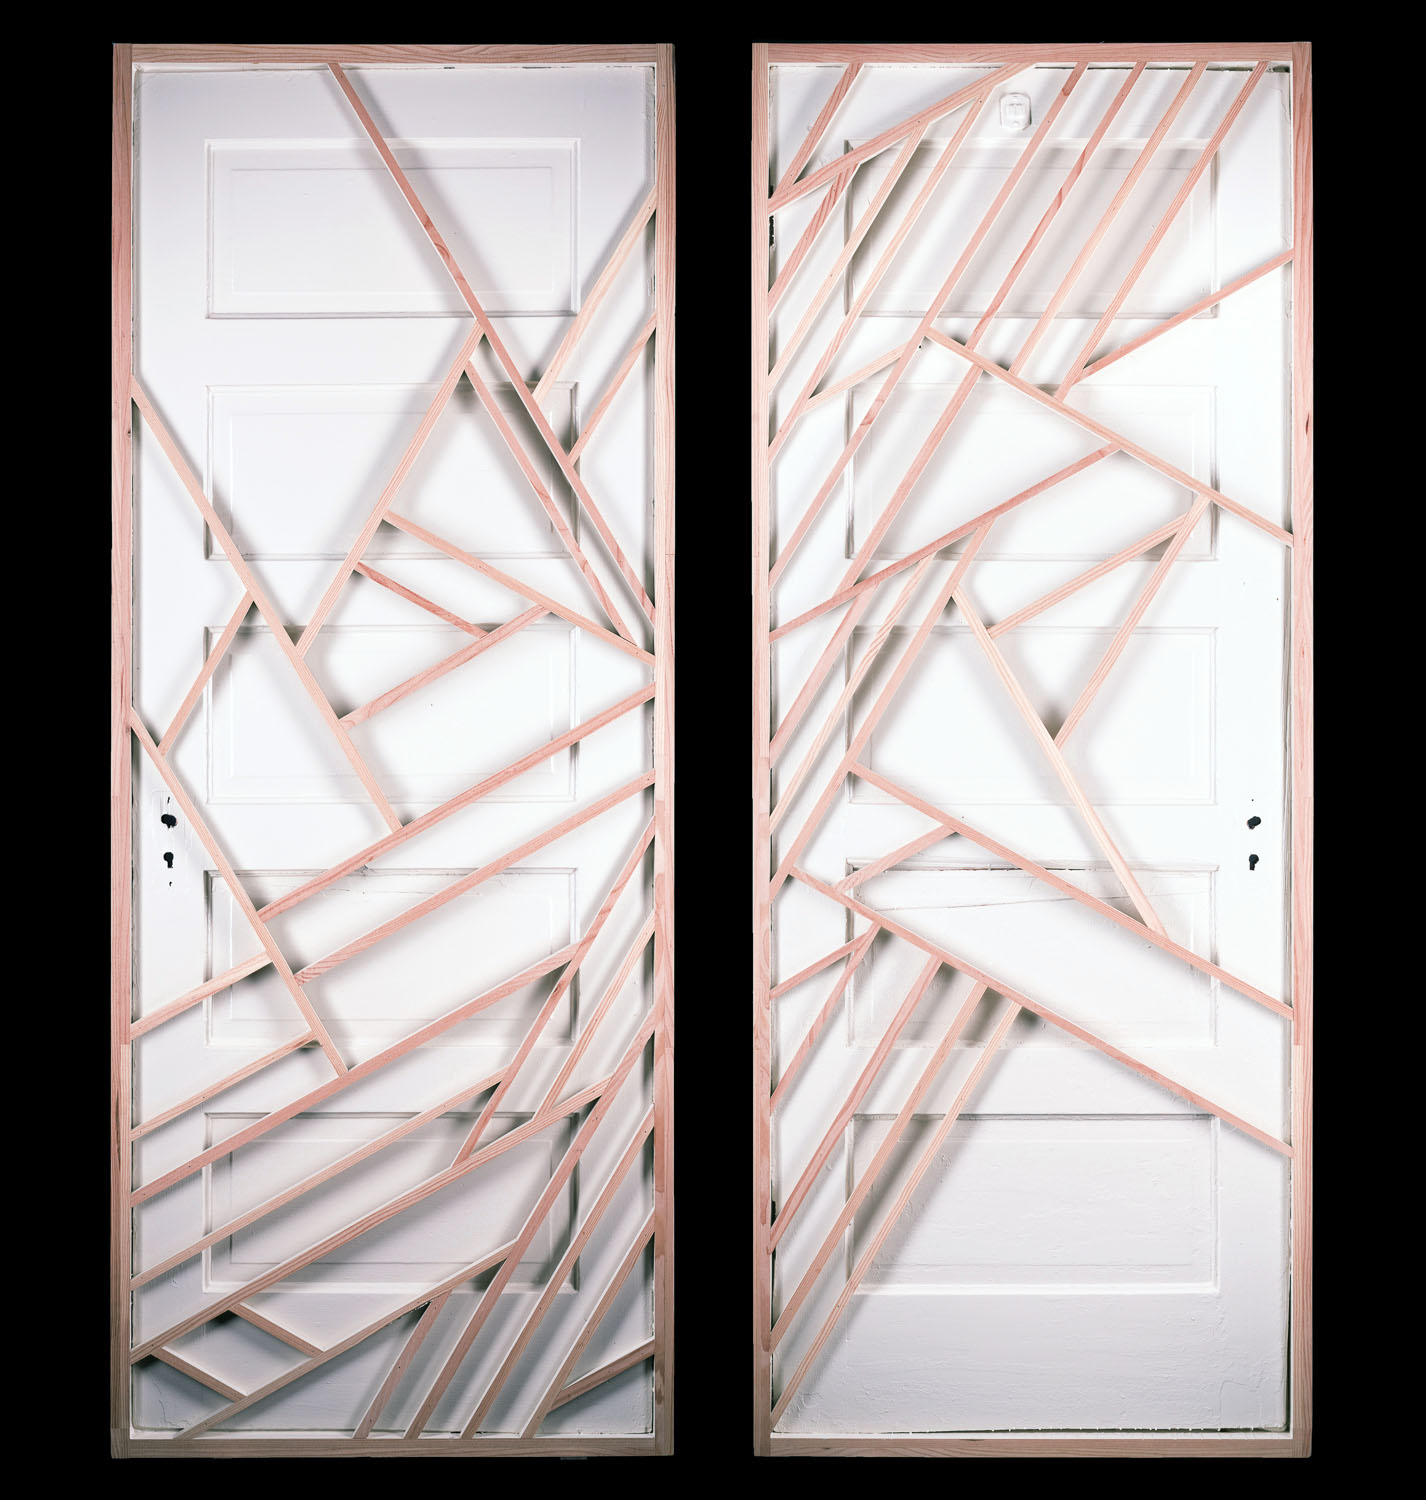 """ART FOR RECOVERY, NEVADA MUSEUM OF ART   'Evolution"""" by Robb Olson (for Doors to Recovery)  Salvaged door, scrap Douglas fir, paint   Goes to auction on Sept 10th, 2016    http://www.doorstorecovery.org"""